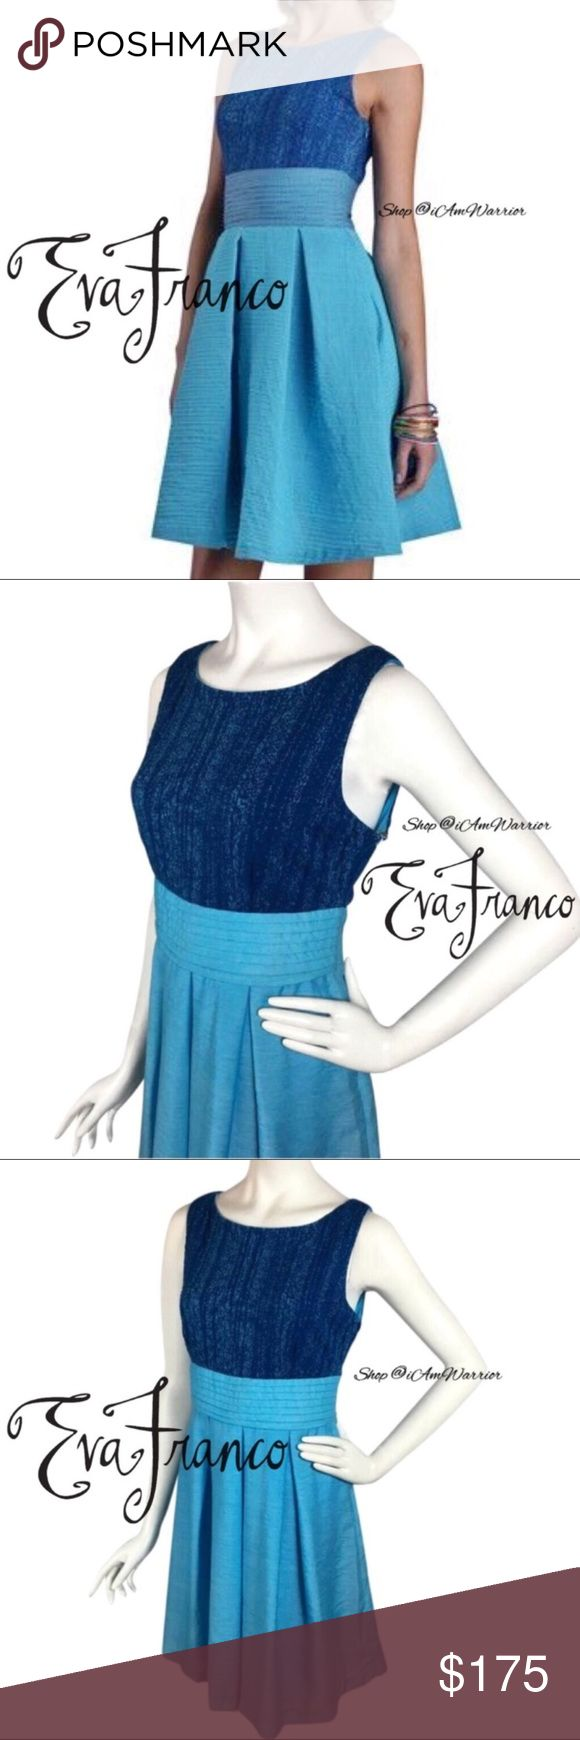 Eva Franco NWT sleeveless Viola dress Gorgeous Eva Franco sleeveless Viola dress in Capri breeze, marine blue hues. Upper portion is similar to a light sweater knit with flattering wide banded waist to accentuate the waist with a layers pleated shirt for a flattering feminine silhouette. Above knee length. Measurements upon request. Eva Franco is also a brand commonly sold a Anthropologie. Brand new with tags, retailed at $228. Please read my bio regarding closet policies prior to any…